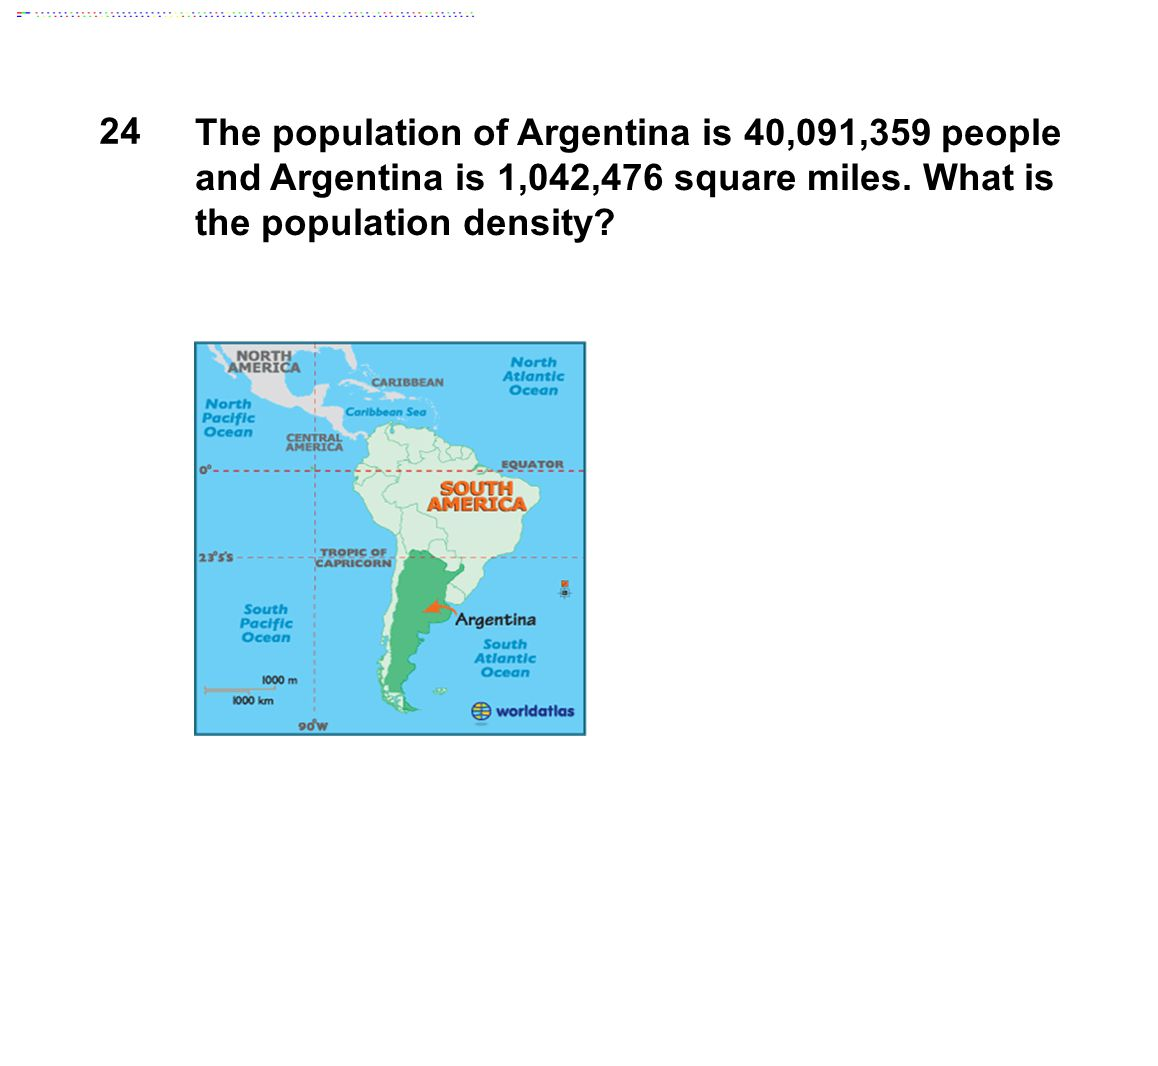 24 The population of Argentina is 40,091,359 people and Argentina is 1,042,476 square miles. What is the population density